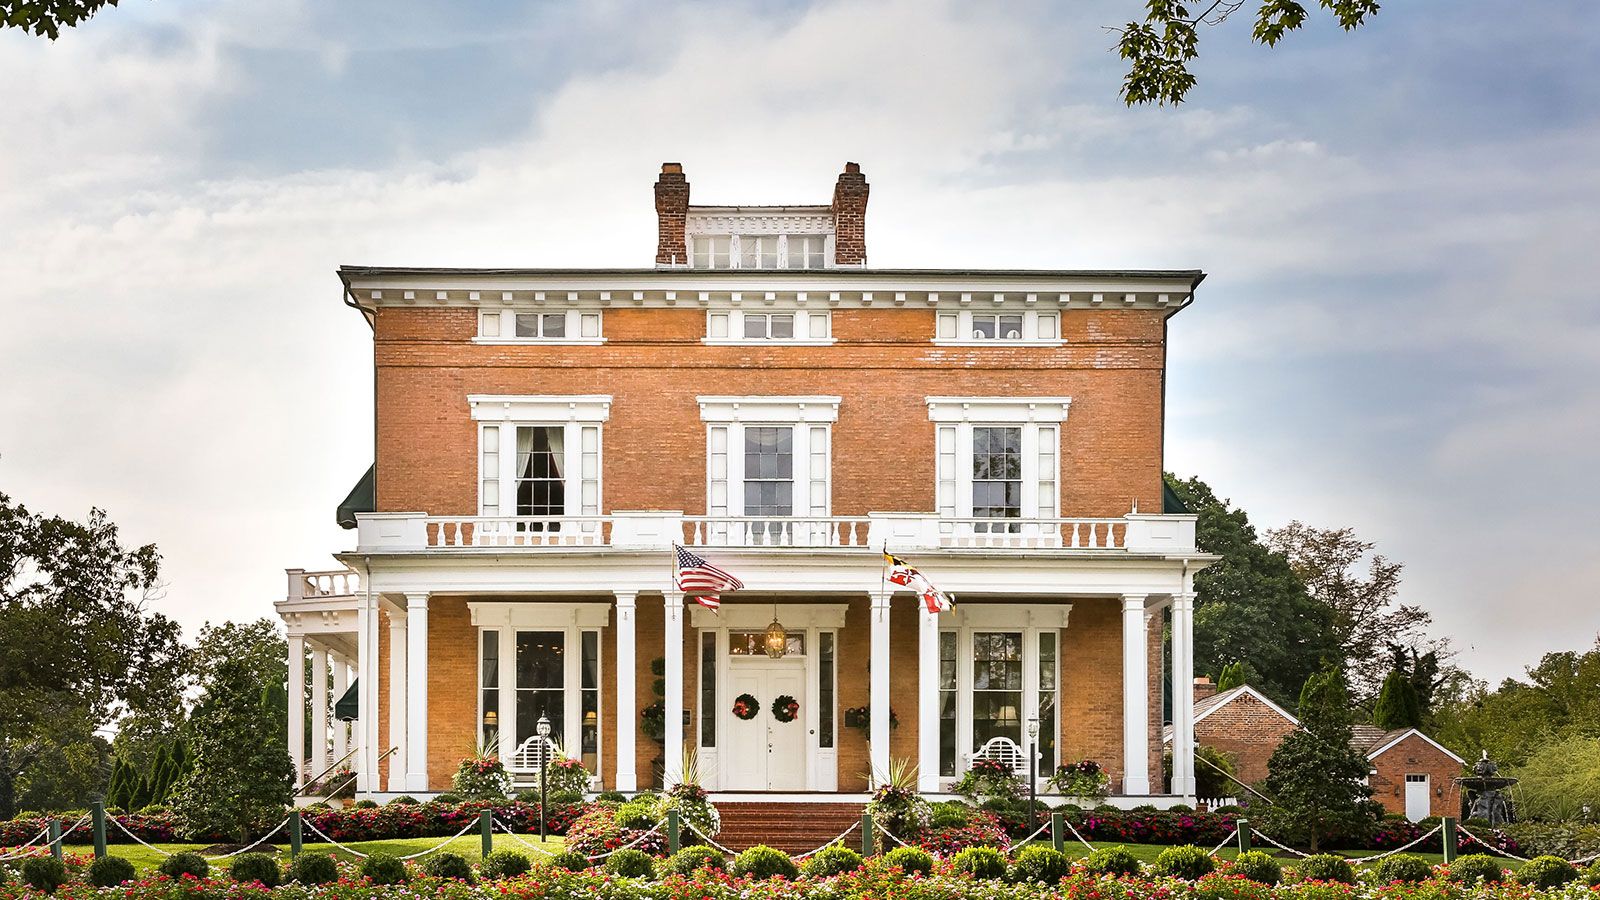 Discover the Greek Revival-style architecture of this 17,000-square-foot mansion.